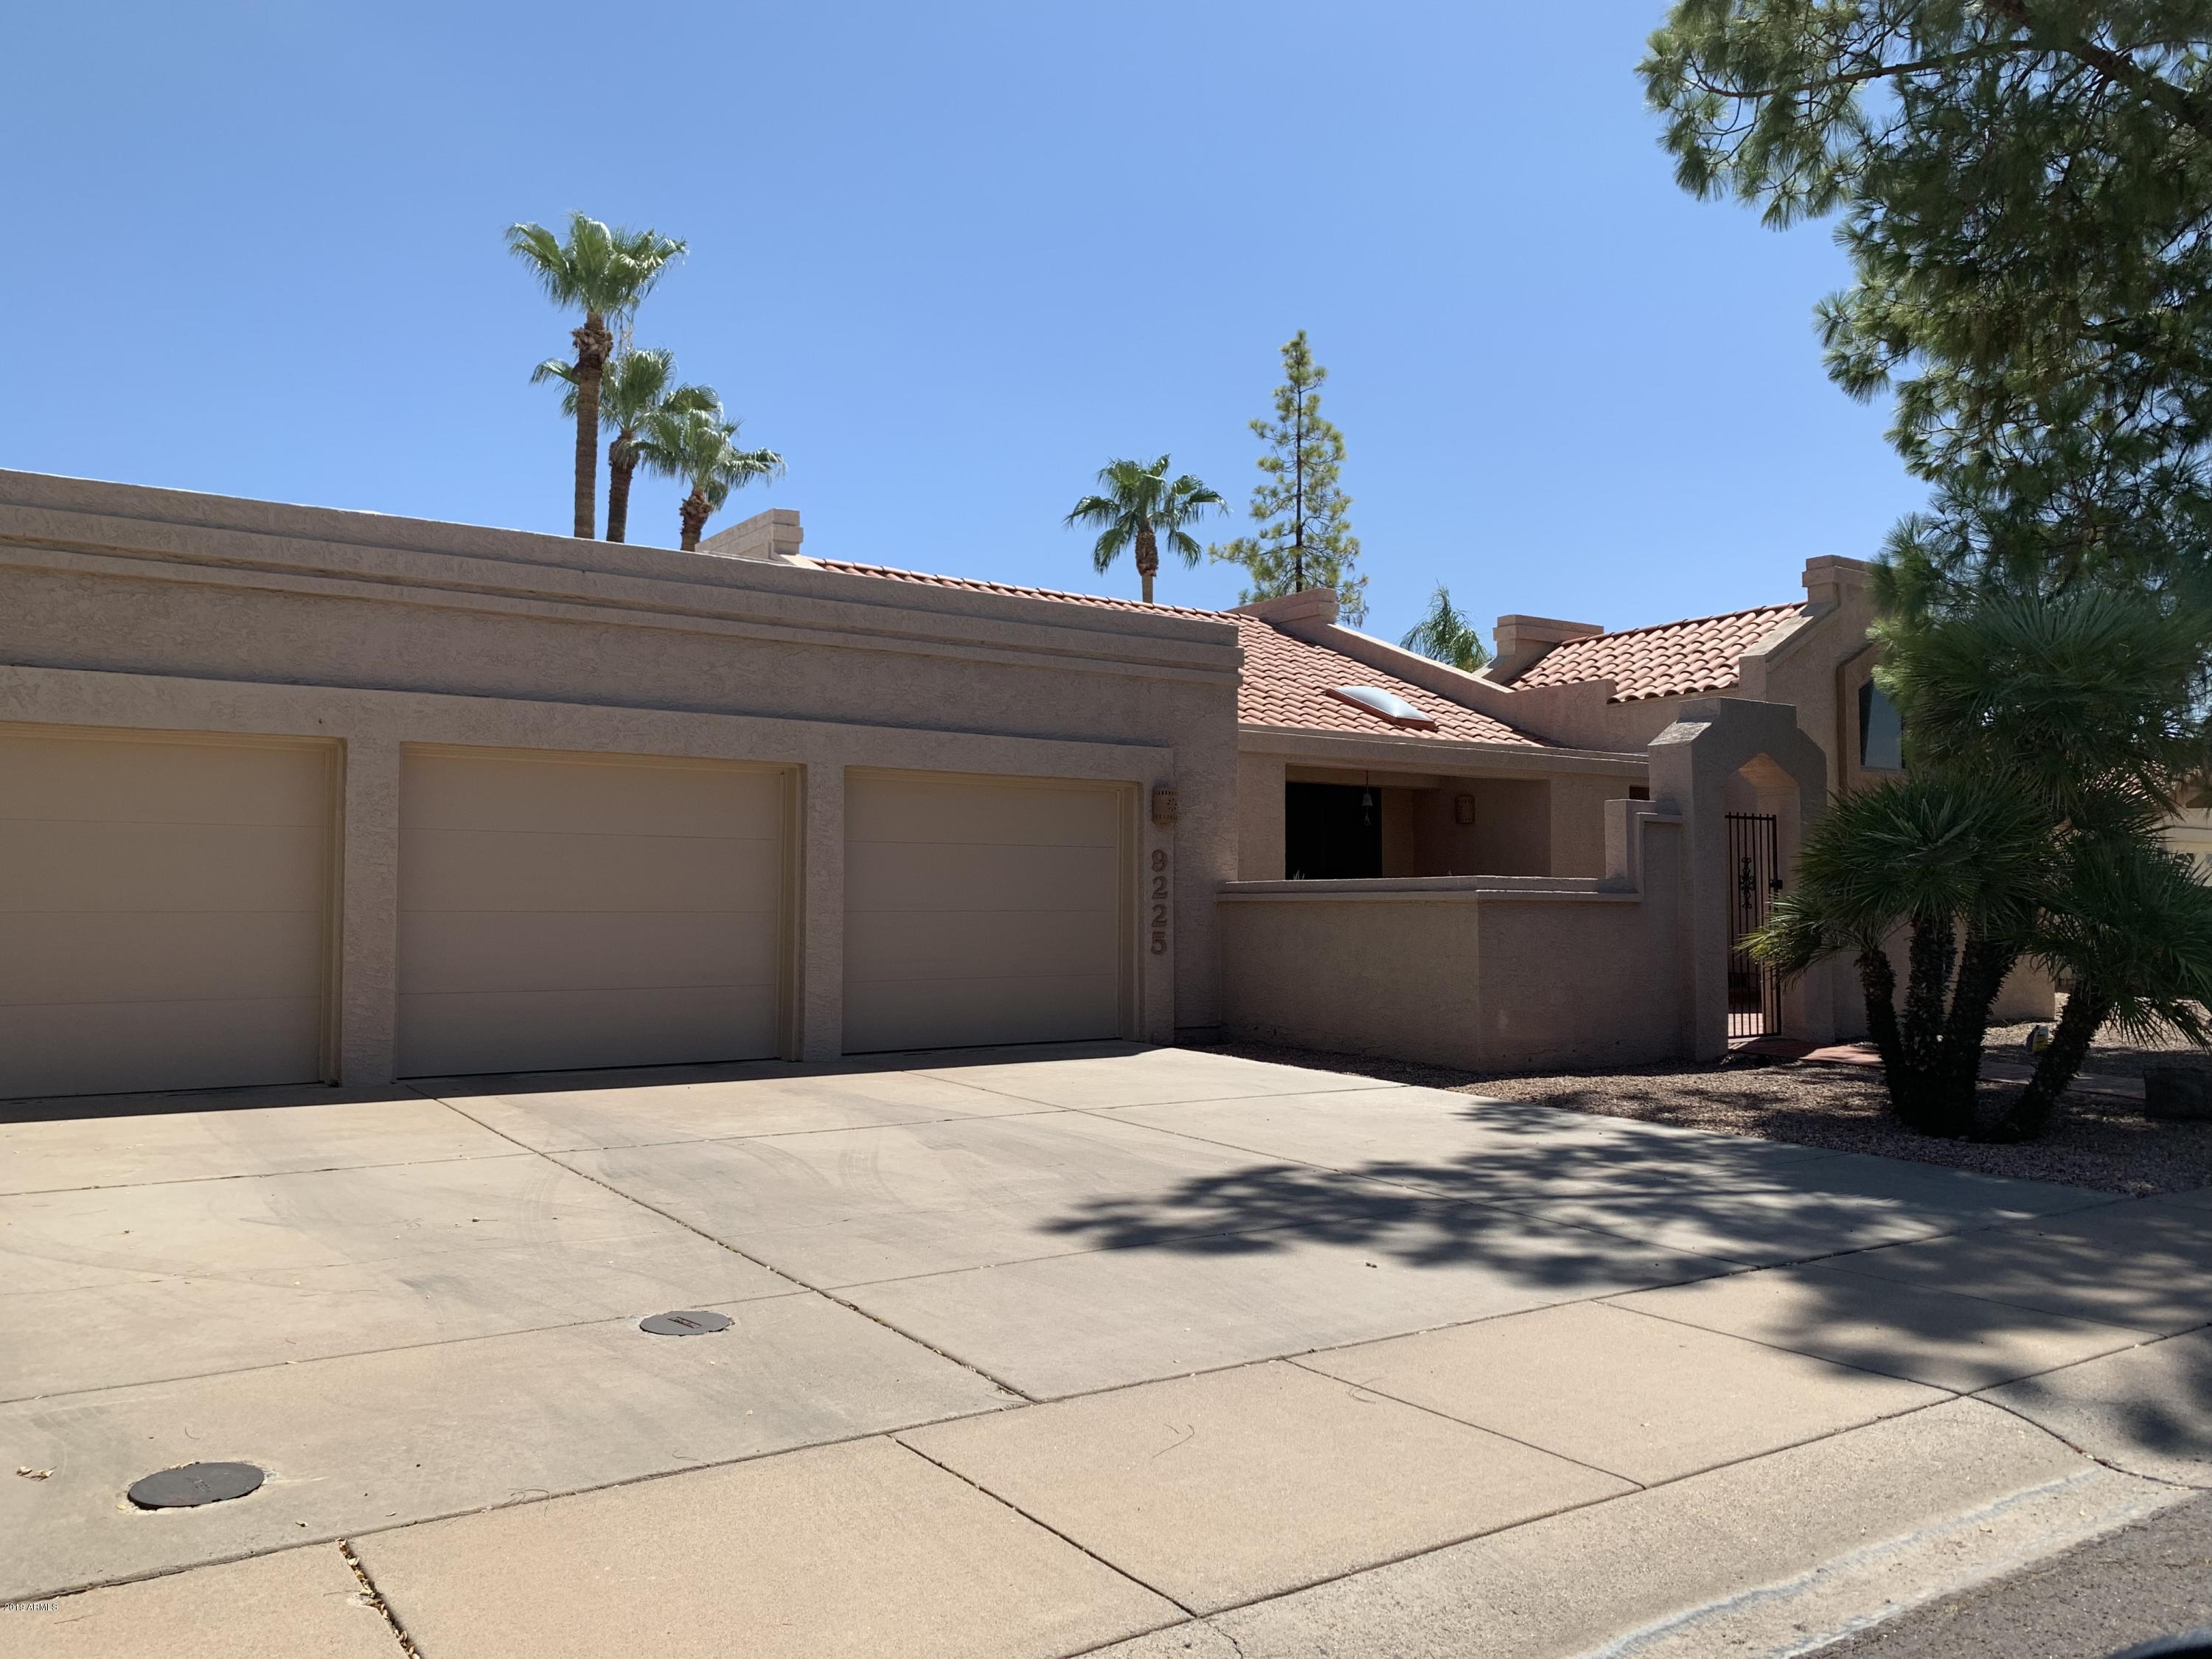 9225 N 83RD Way, Scottsdale AZ 85258